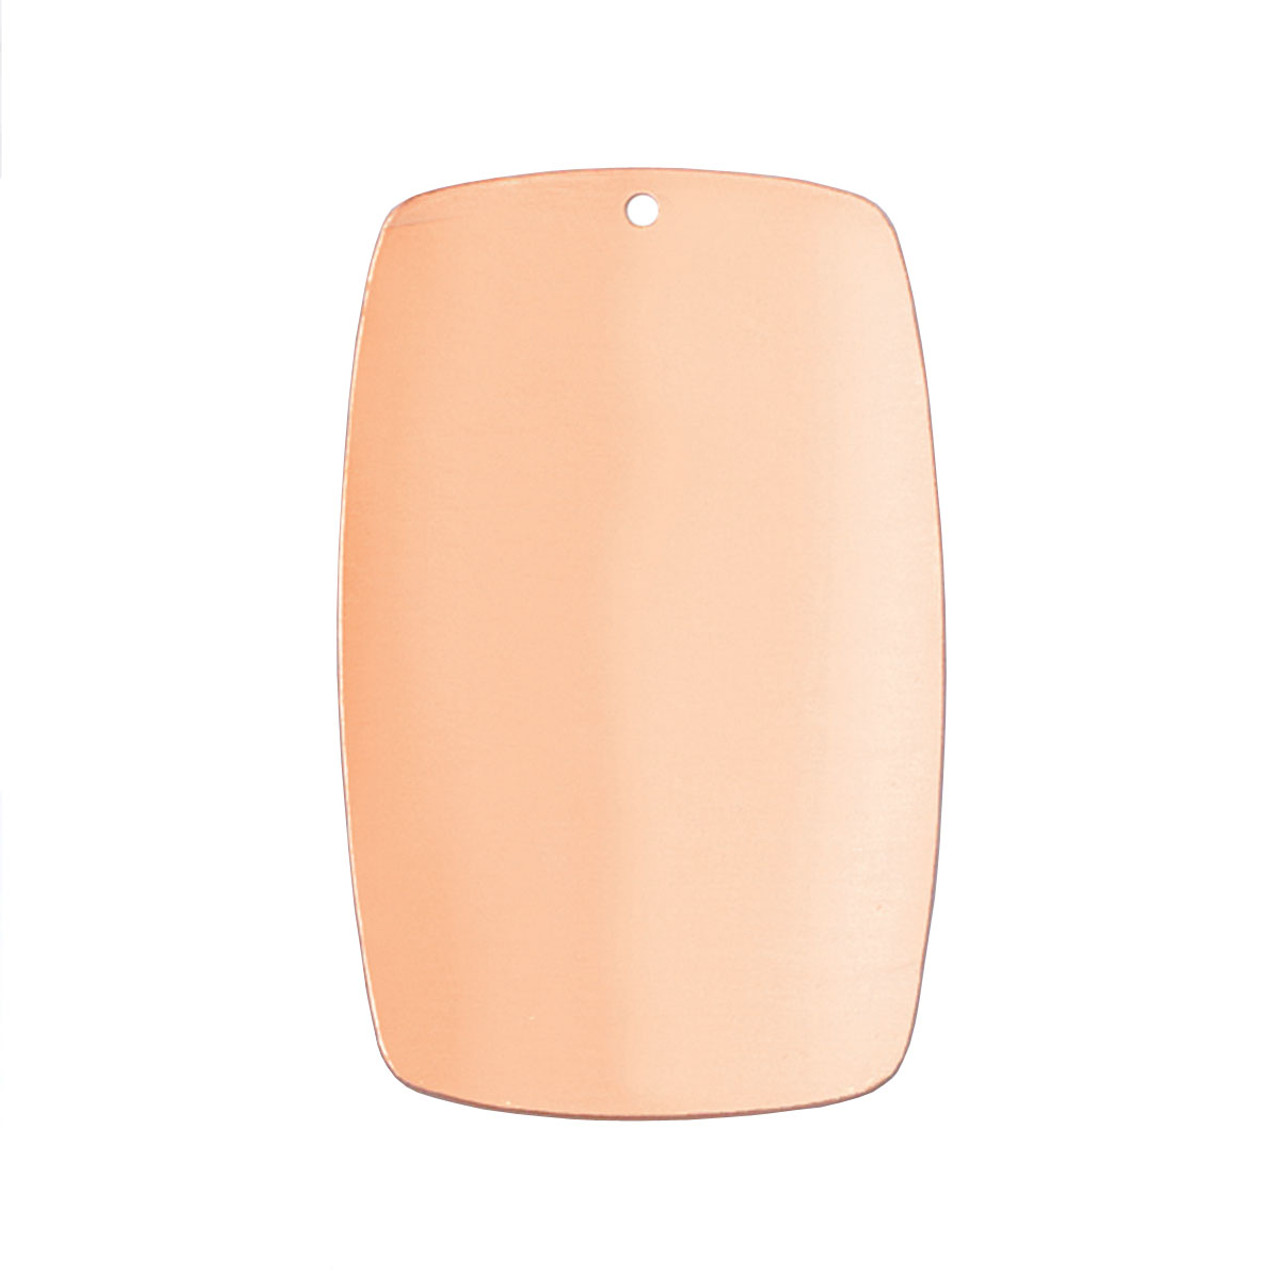 Copper Blank - Rectangle - 51 x 32mm